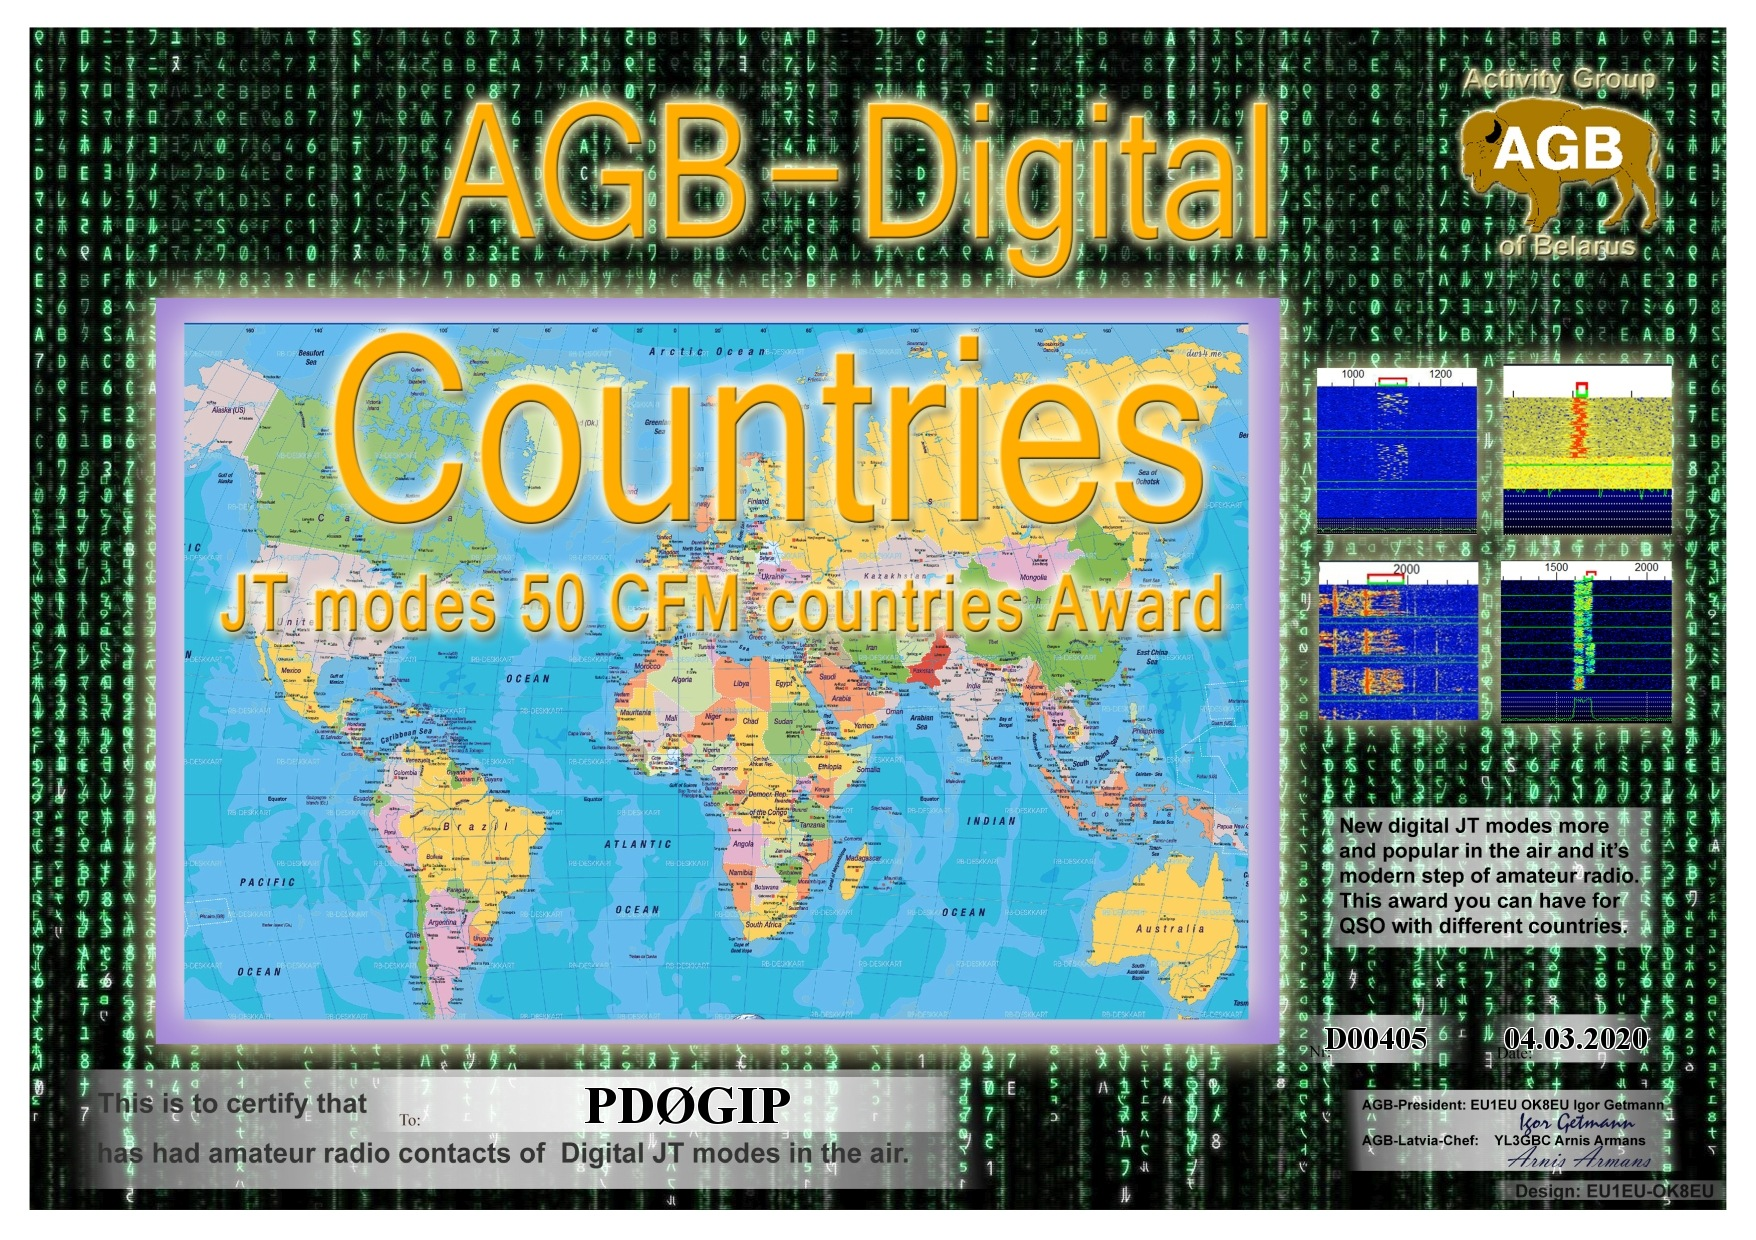 PD0GIP COUNTRIES BASIC 50 AGB